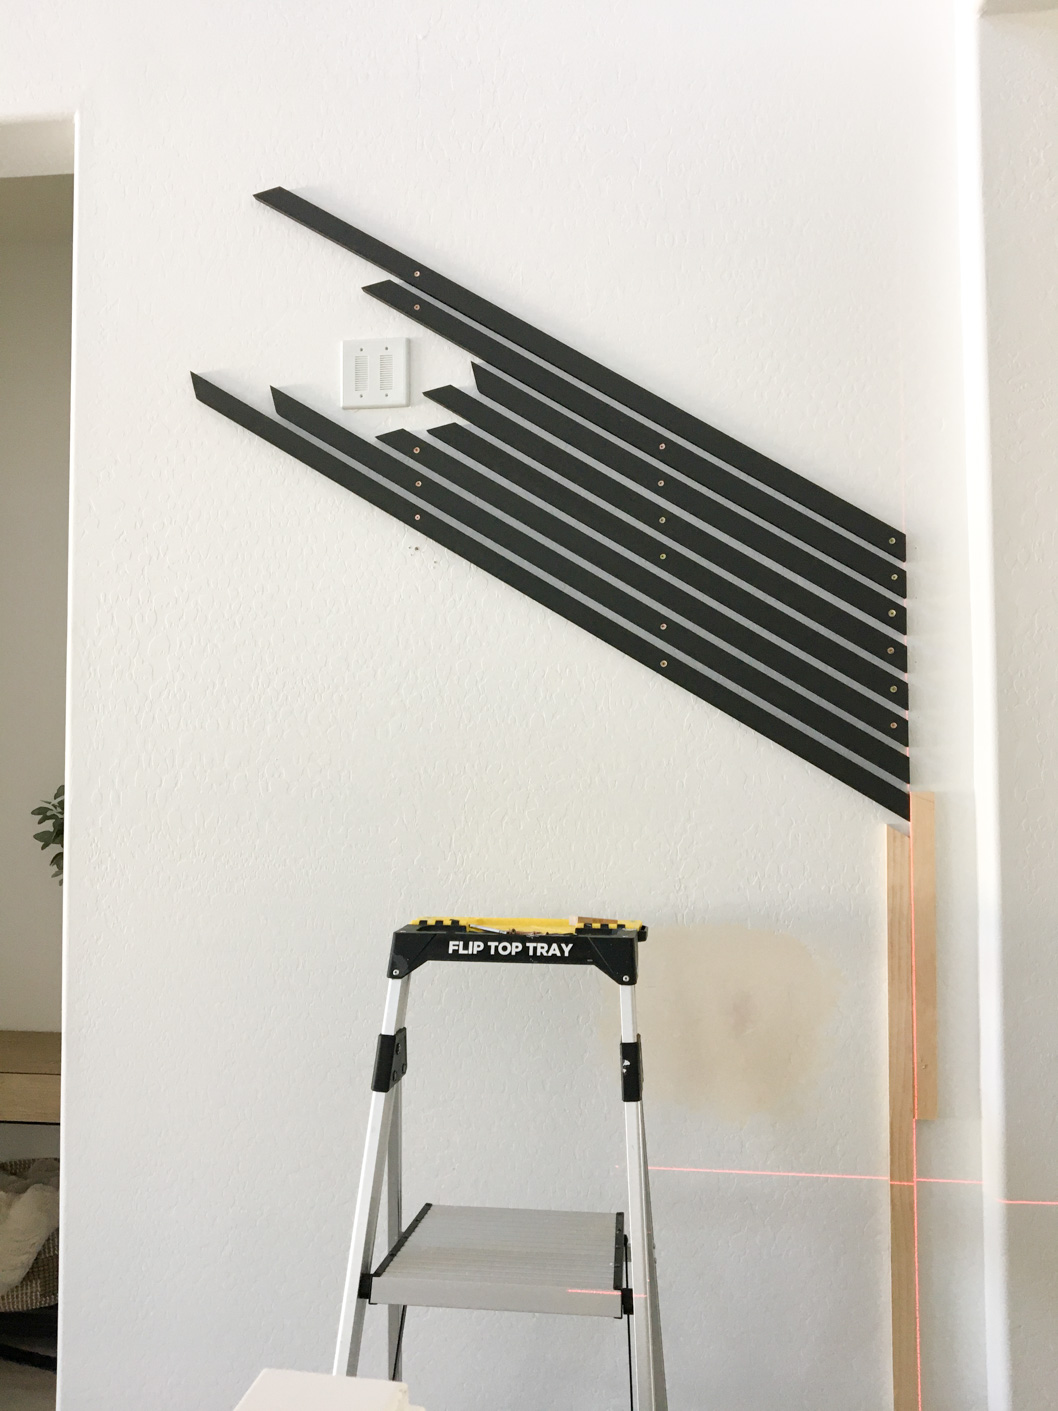 Diagonal wood slats painted black